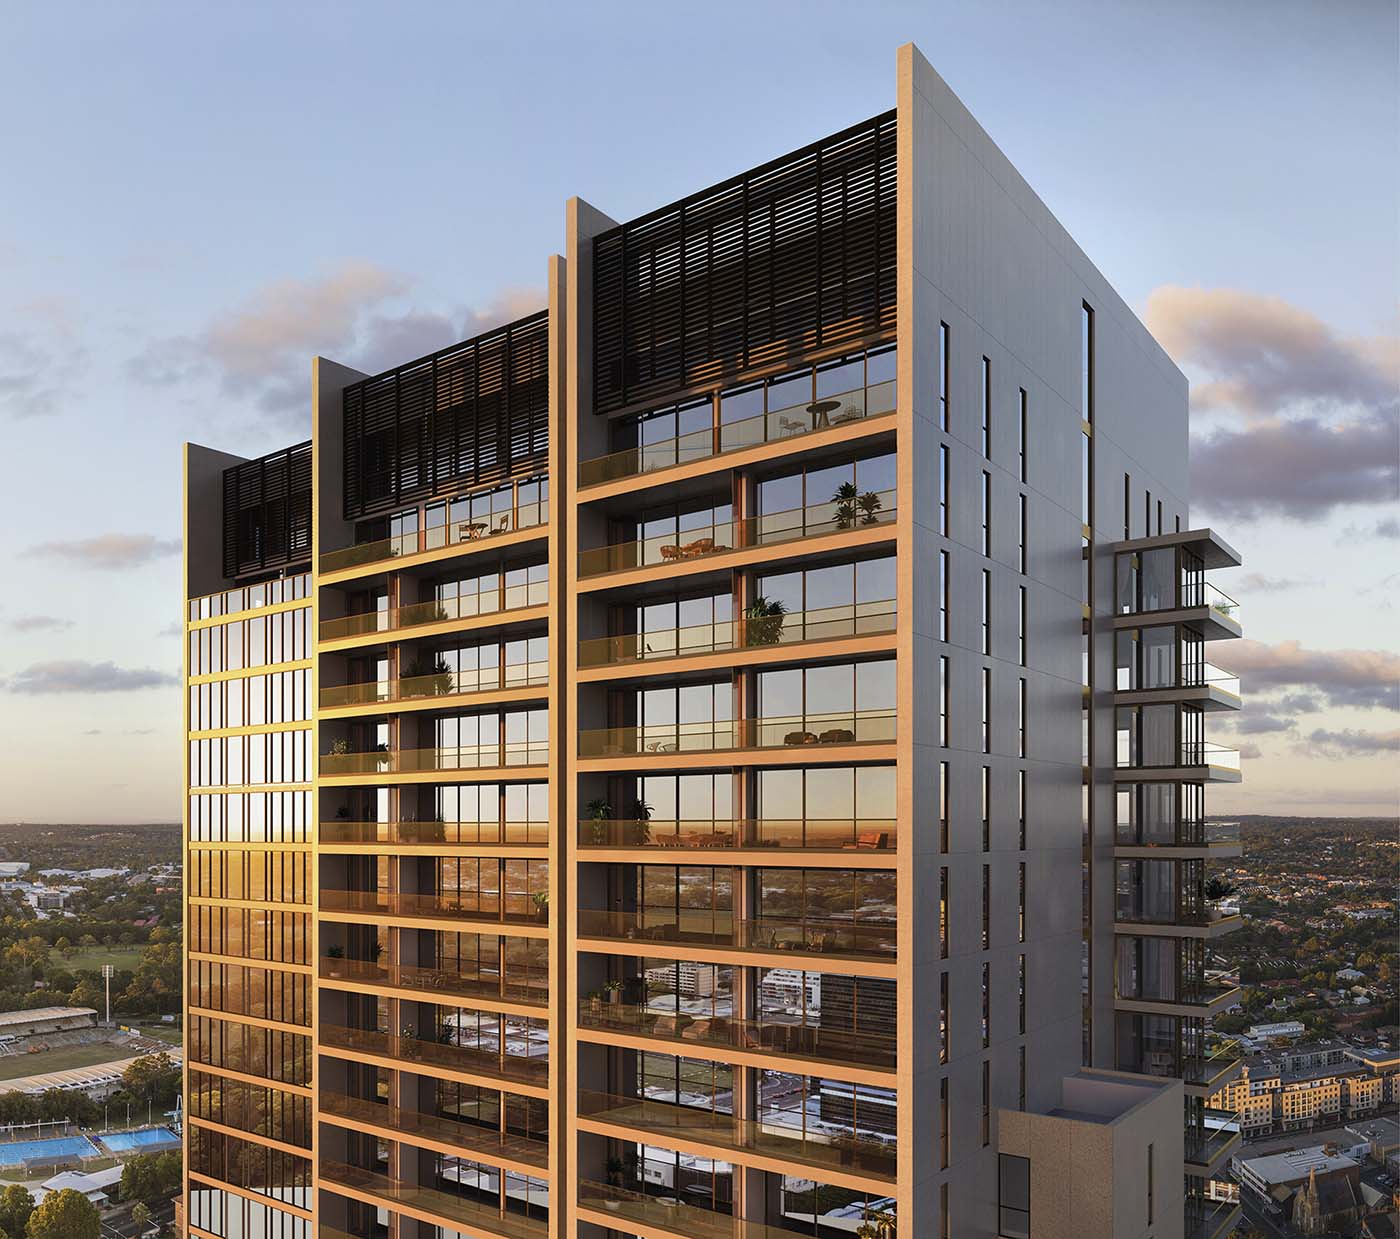 Upper part of The Lennox in Parramatta, Sydney showing the view and penthouses.